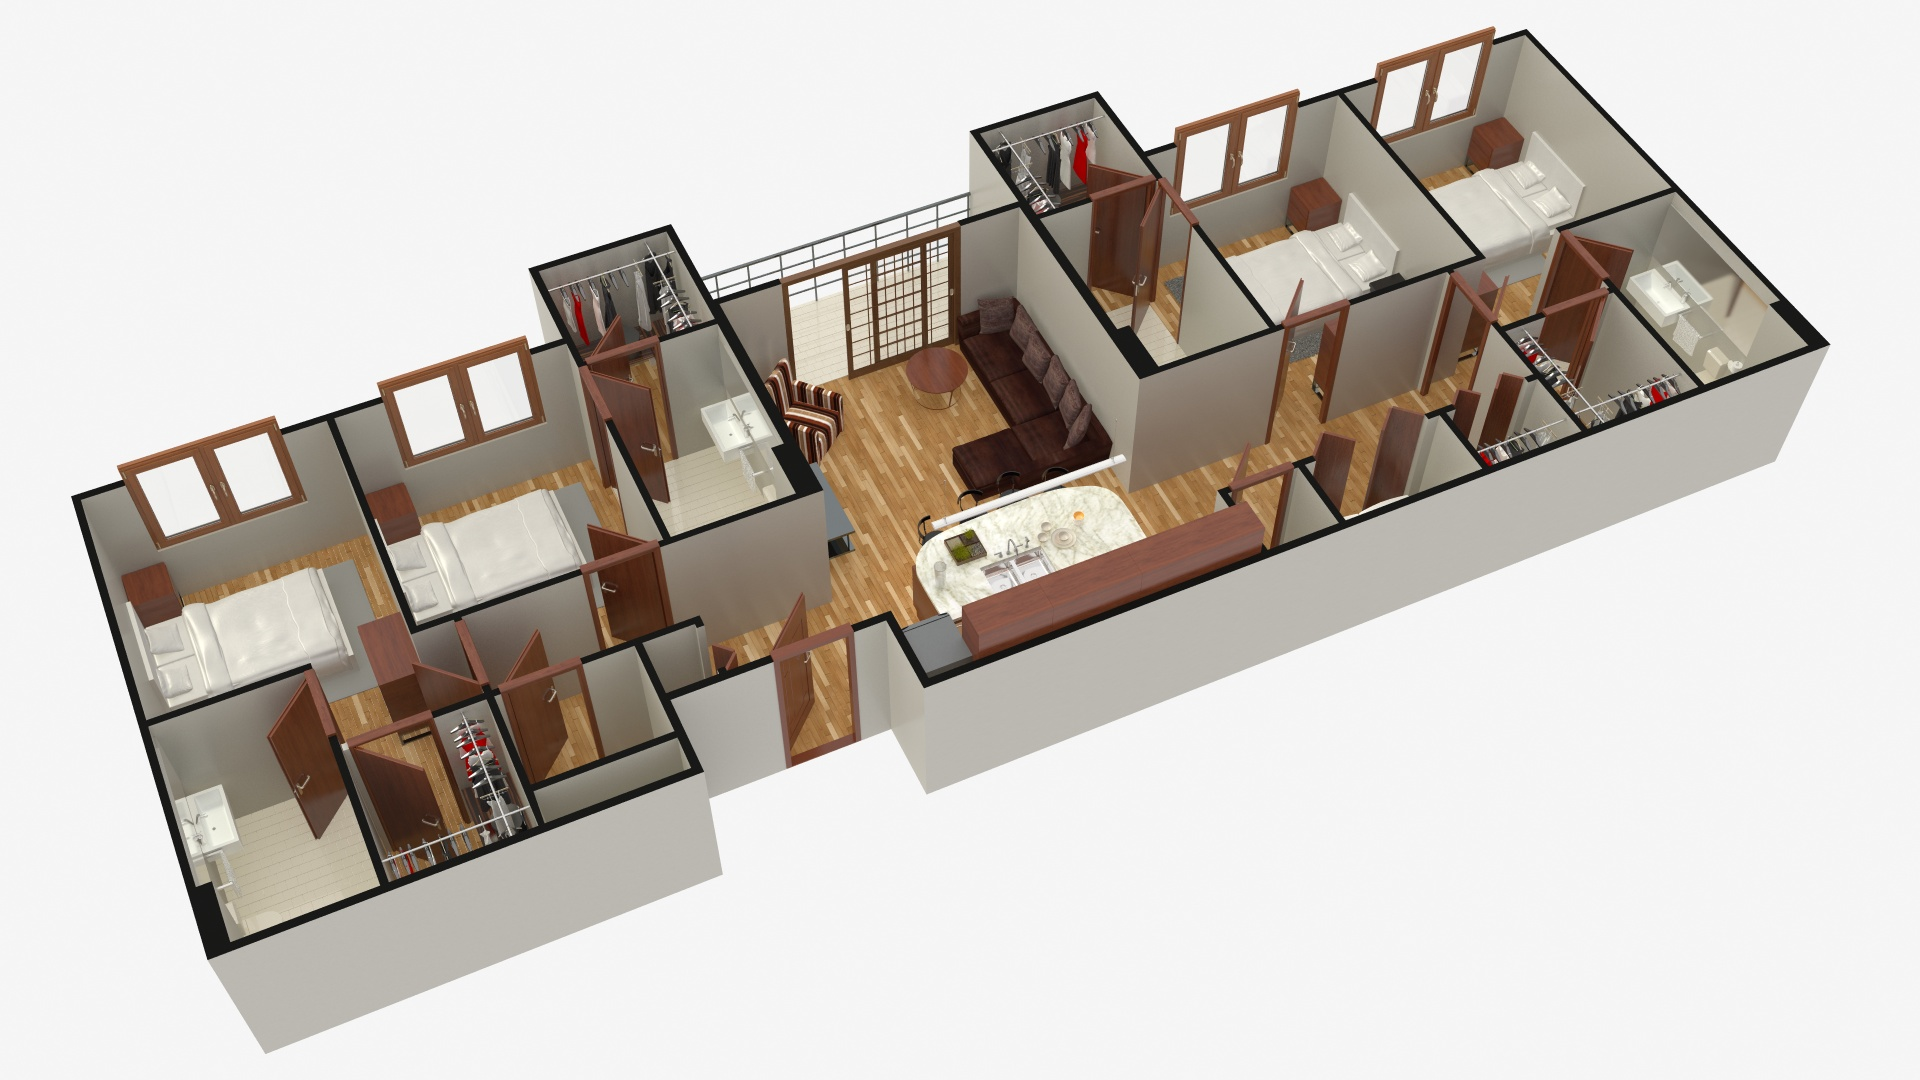 3d floor plans 24h site plans for building permits site plan drawing drafting service Floor plan design website